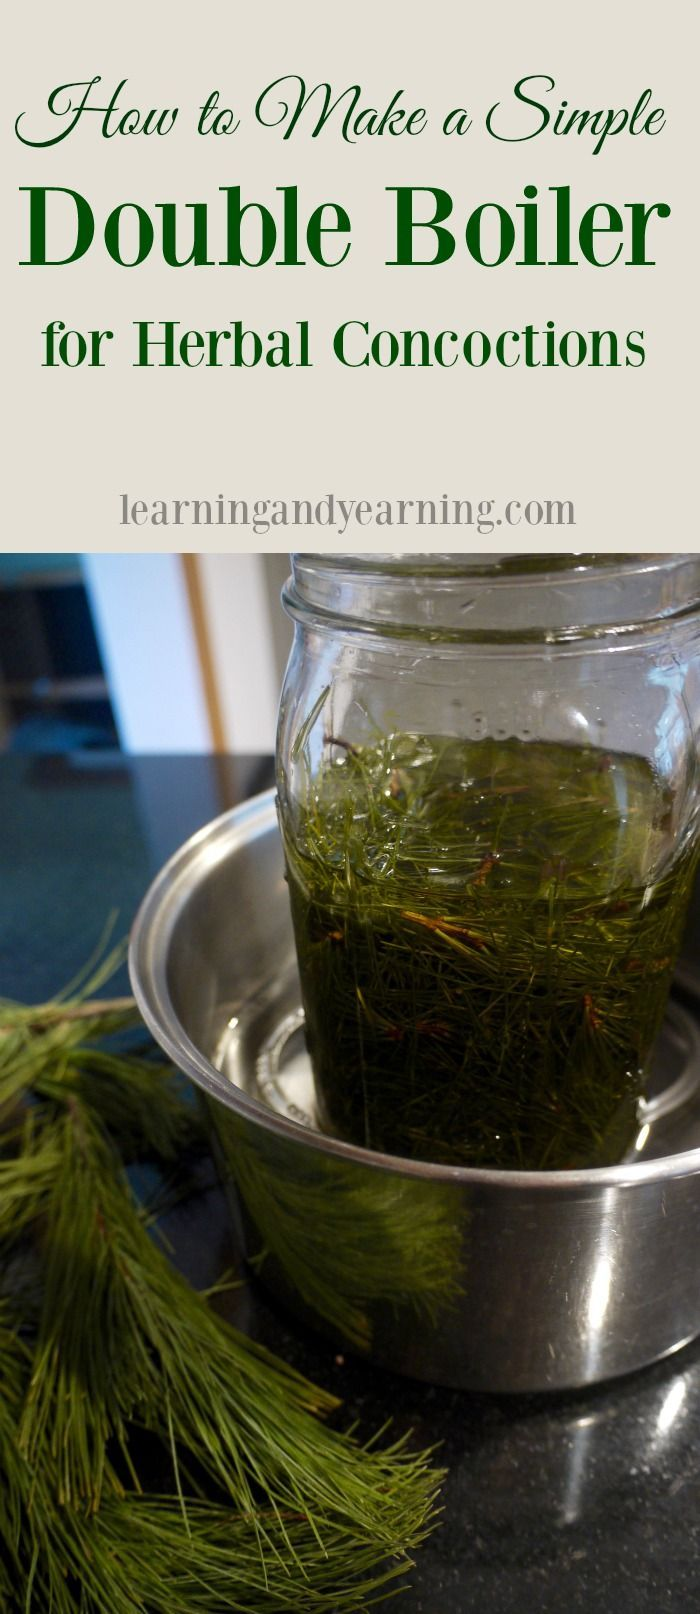 Making your own herbal concoctions often requires a double boiler. No need to purchase one when you can make your own from items already in your kitchen!